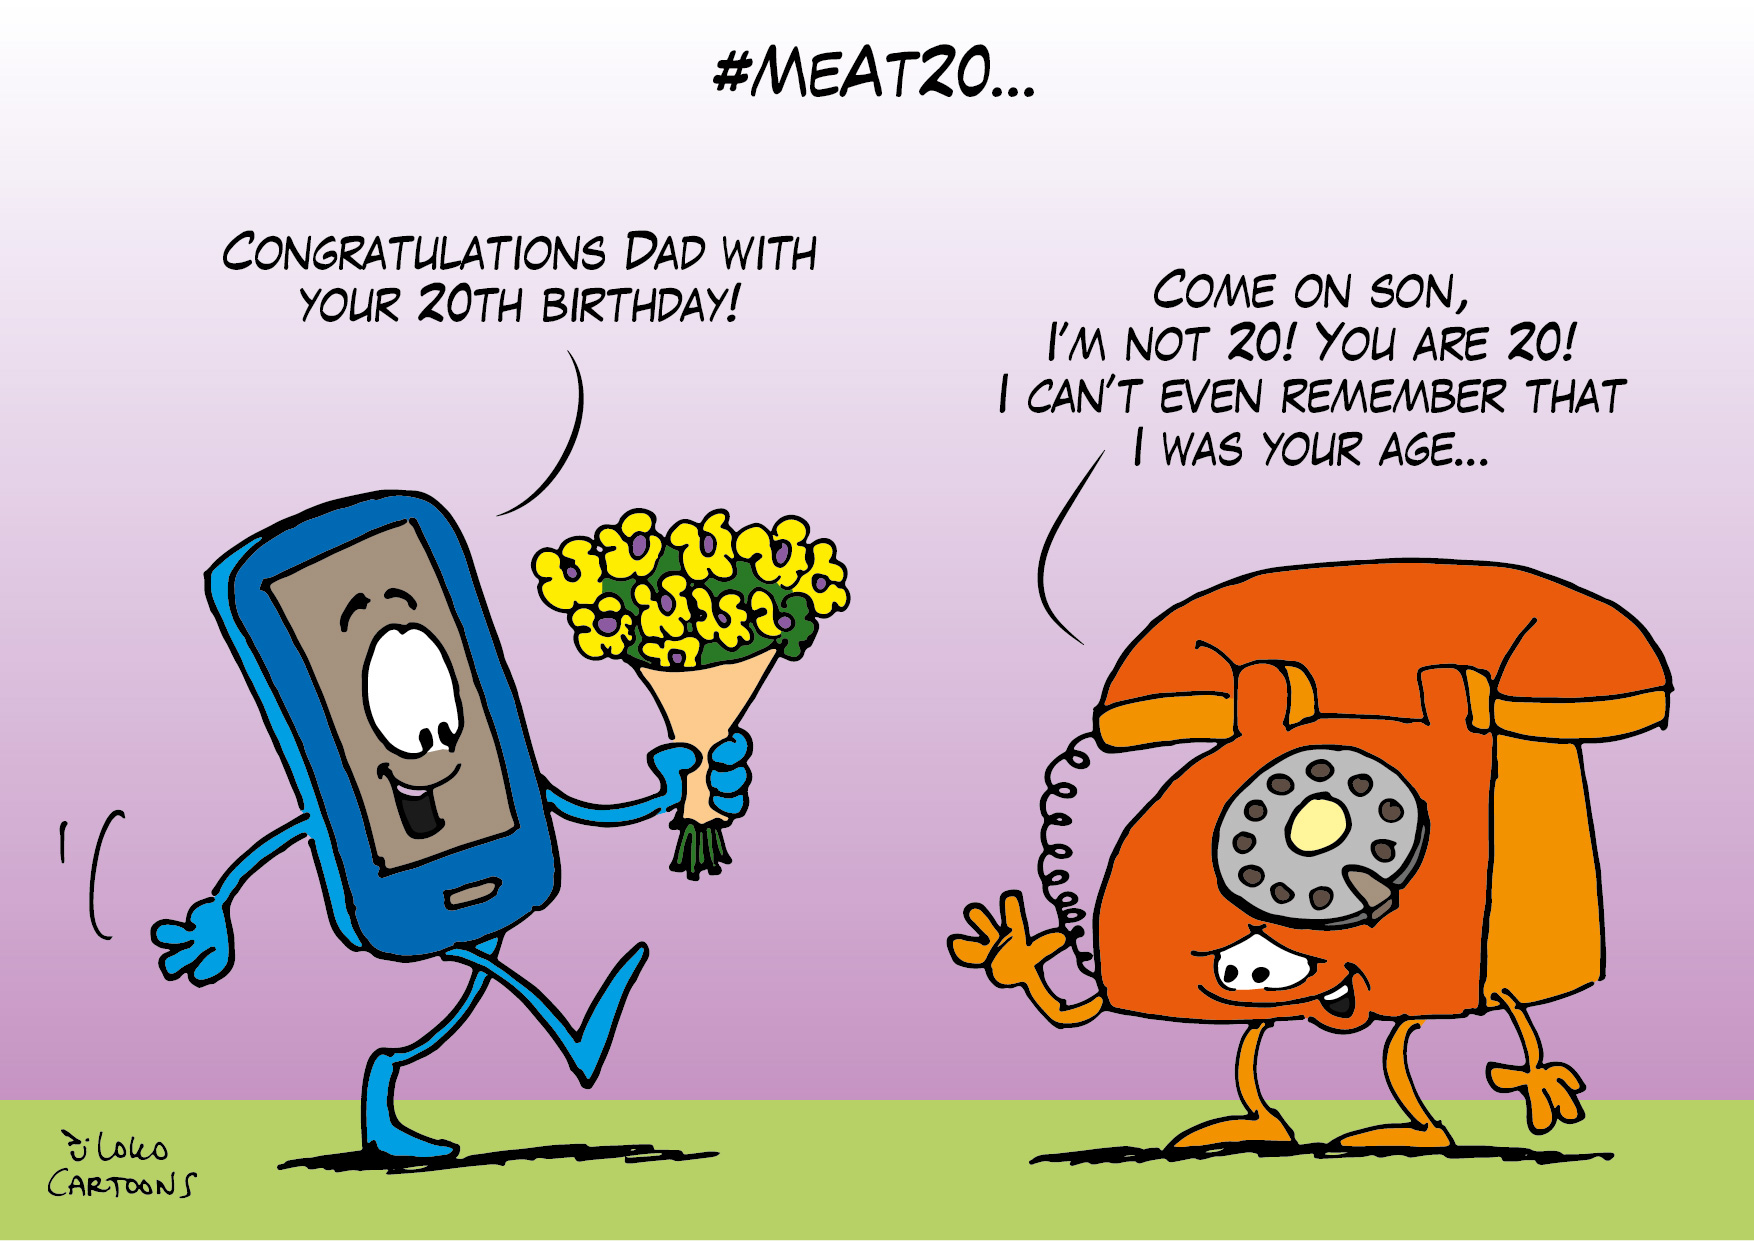 #MeAt20…